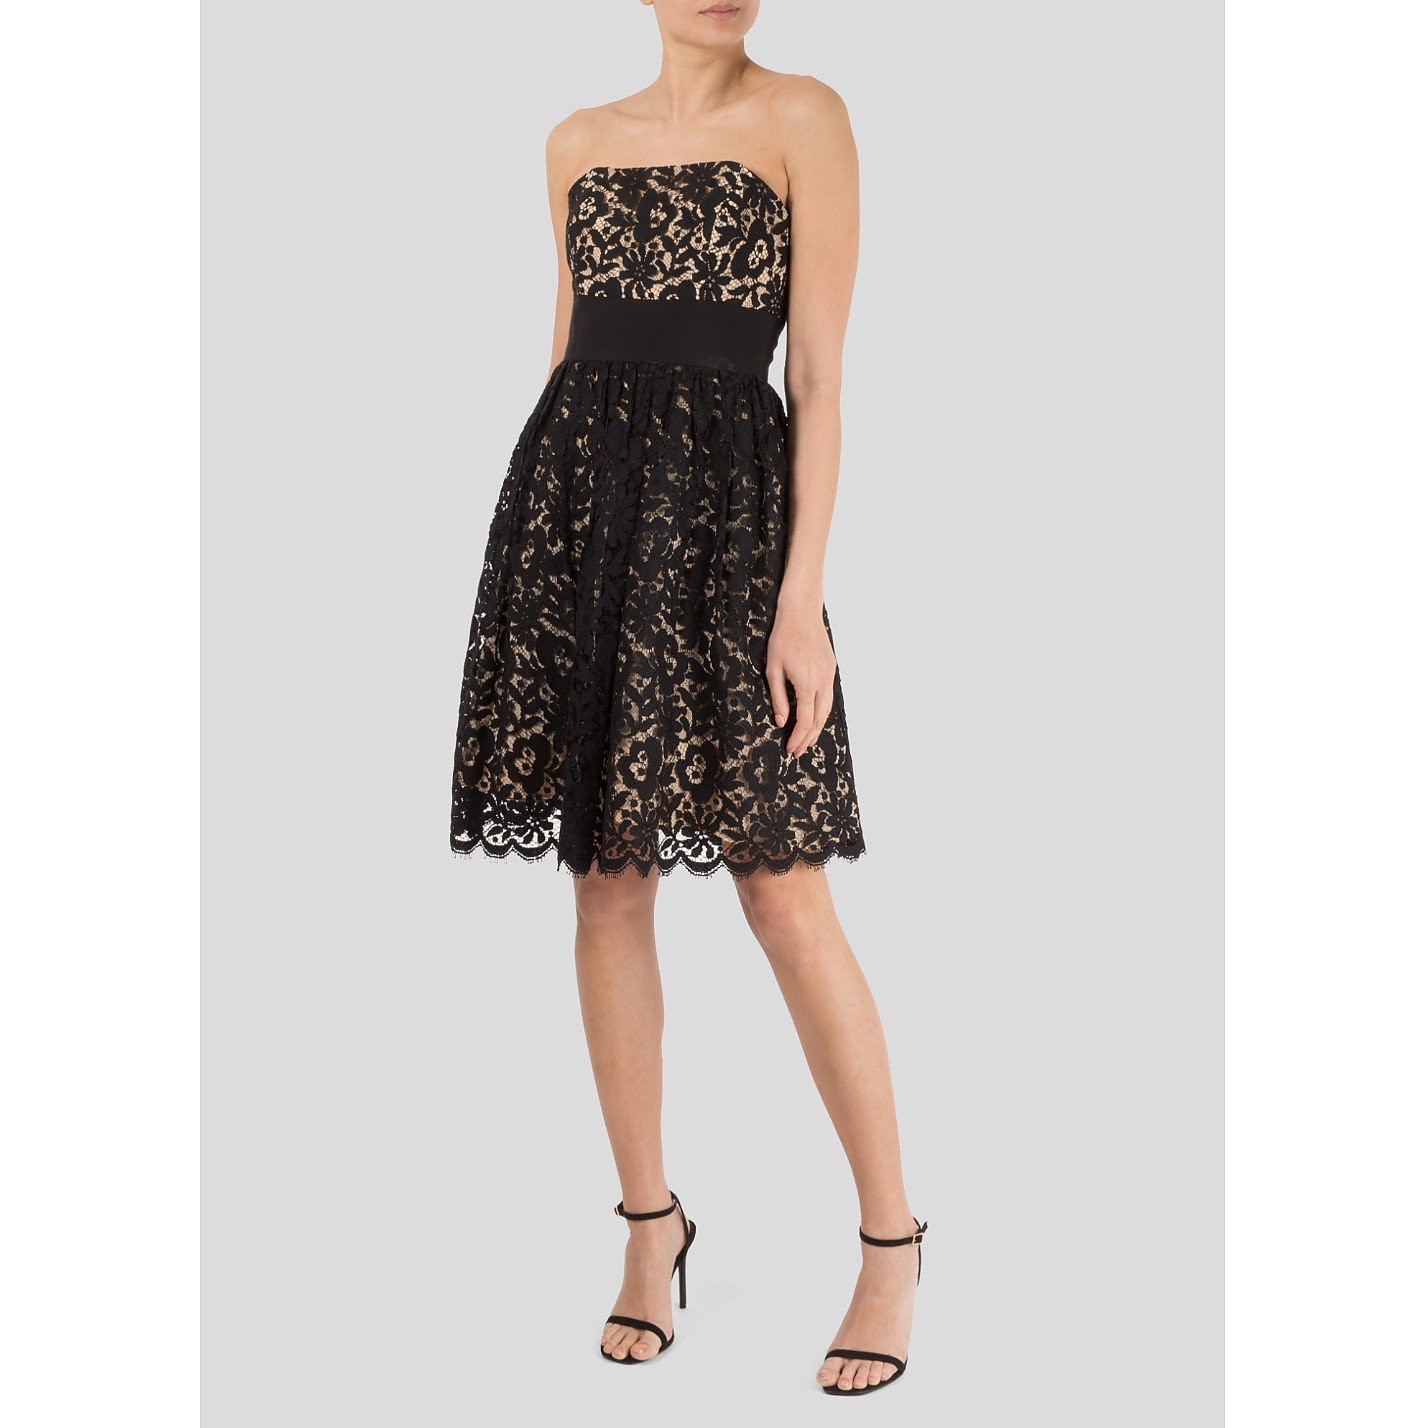 MILLY New York Strapless Lace Dress